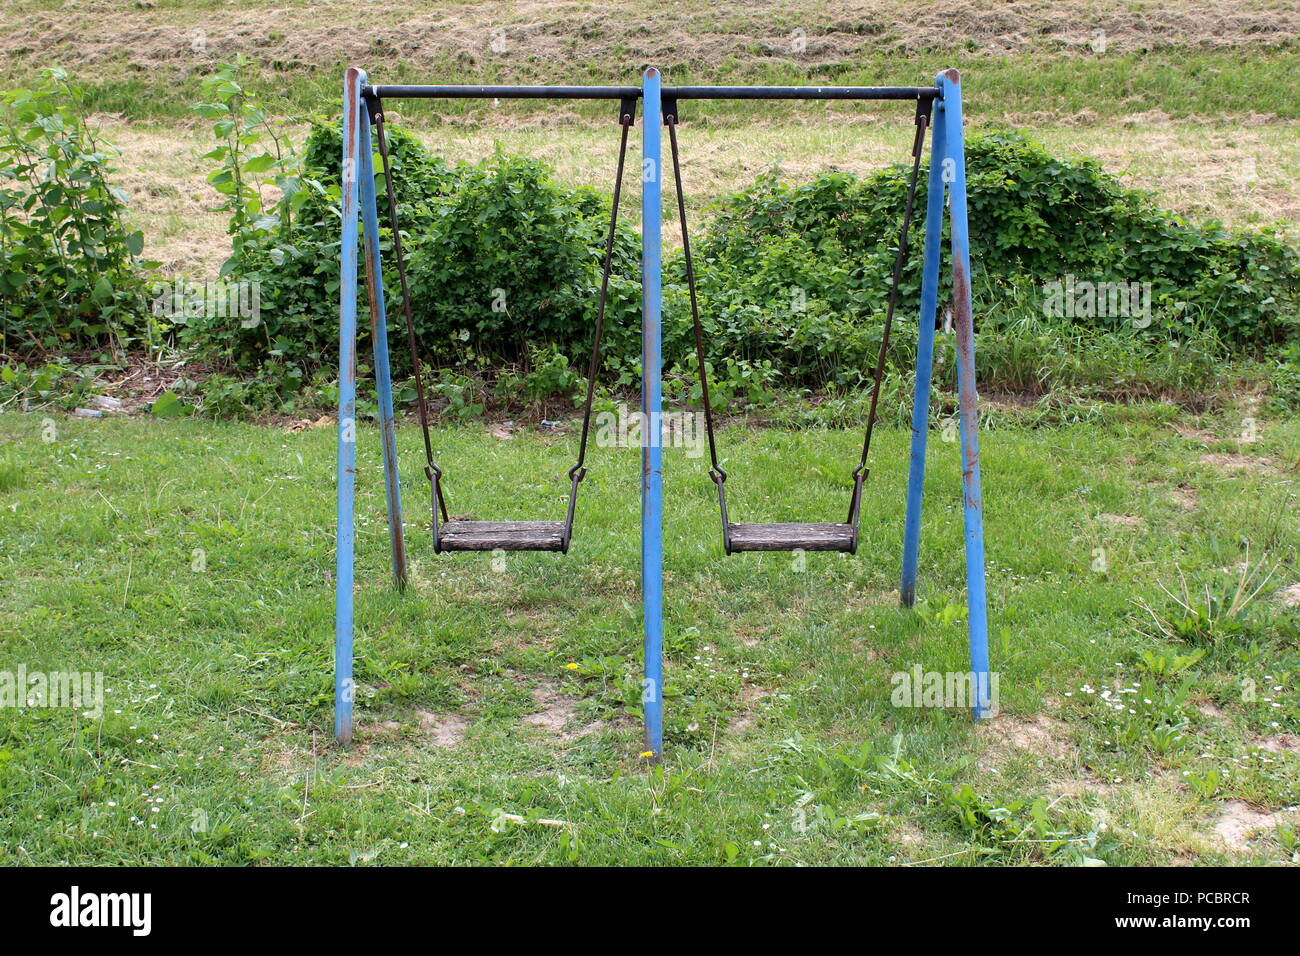 Outdoor Public Playground Equipment Metal Swing With Partially